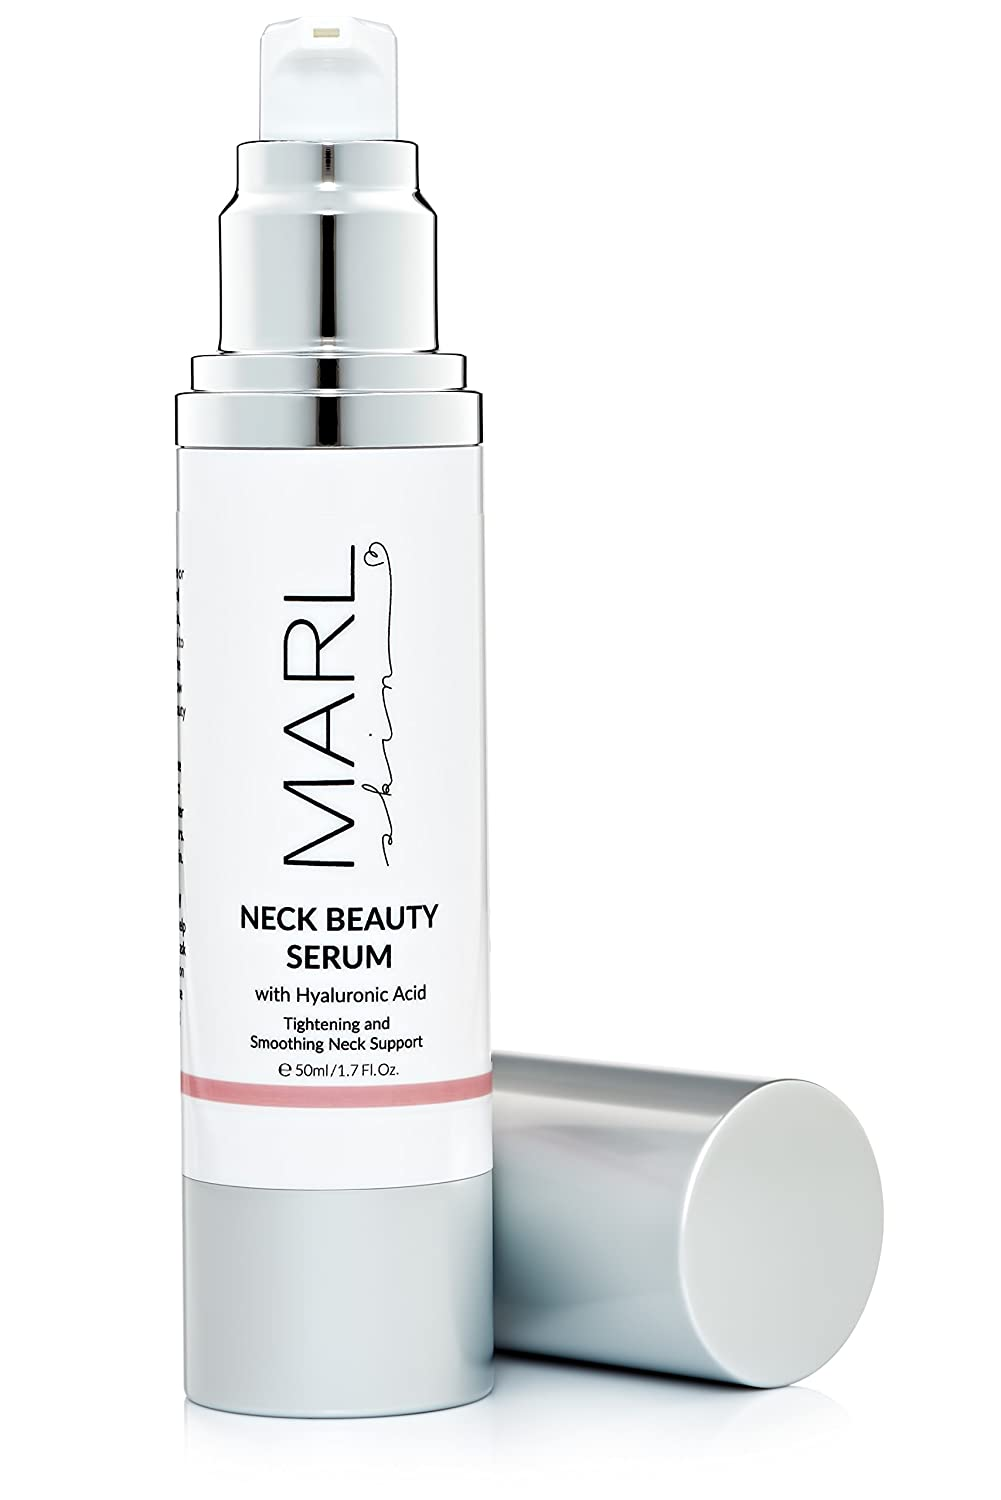 Neck Firming Serum by MARLskin   Anti Aging, Anti Wrinkle with Hyaluronic Acid – Tightens, Lifts, Smoothes, Hydrates – Neck and Decollete – 50 ml AAM-60ml